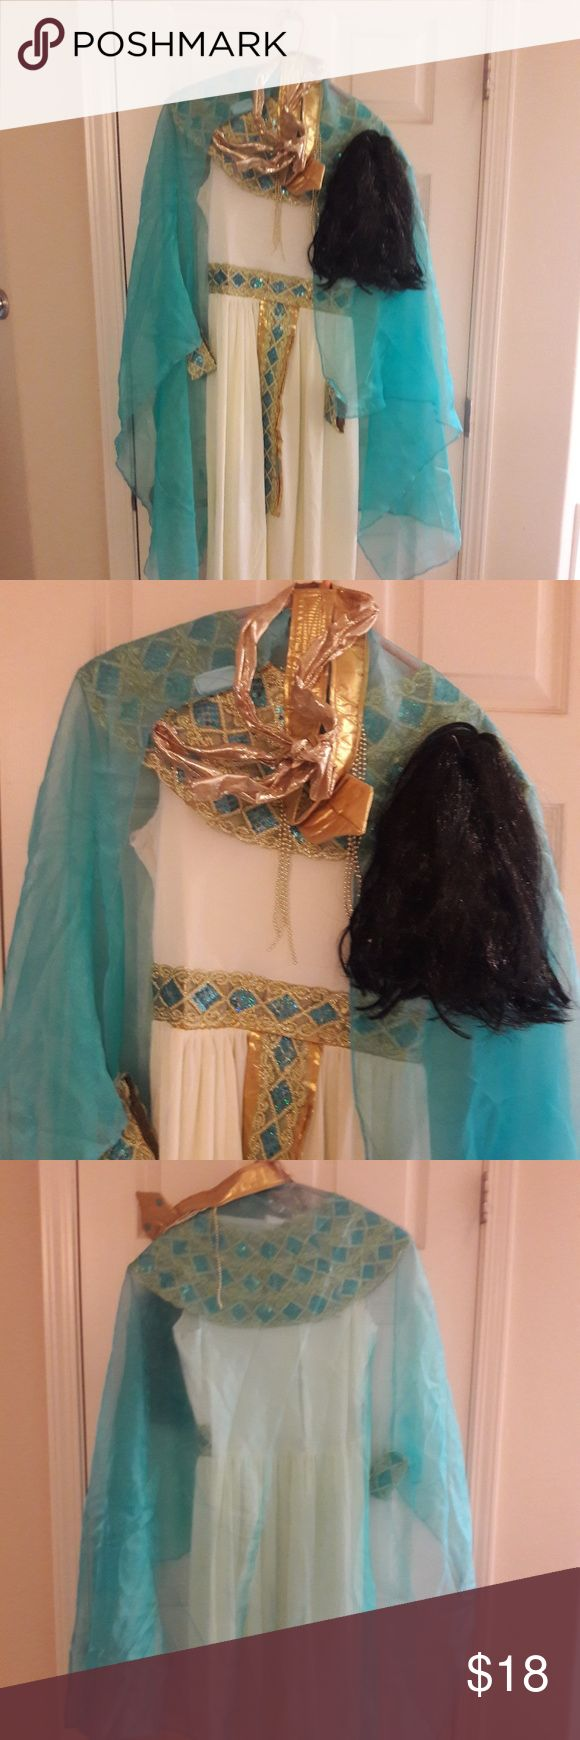 NWT CLEOPATRA HOLIDAY COSTUME SIZE XL NWT CLEOPATRA HOLIDAY COSTUME SIZE XL Complete with head dress,  black Cleopatra wig, wrap-around turquoise scarf. WONDERFUL HOLIDAY COSTUME!!!  Retailed for $50 Other